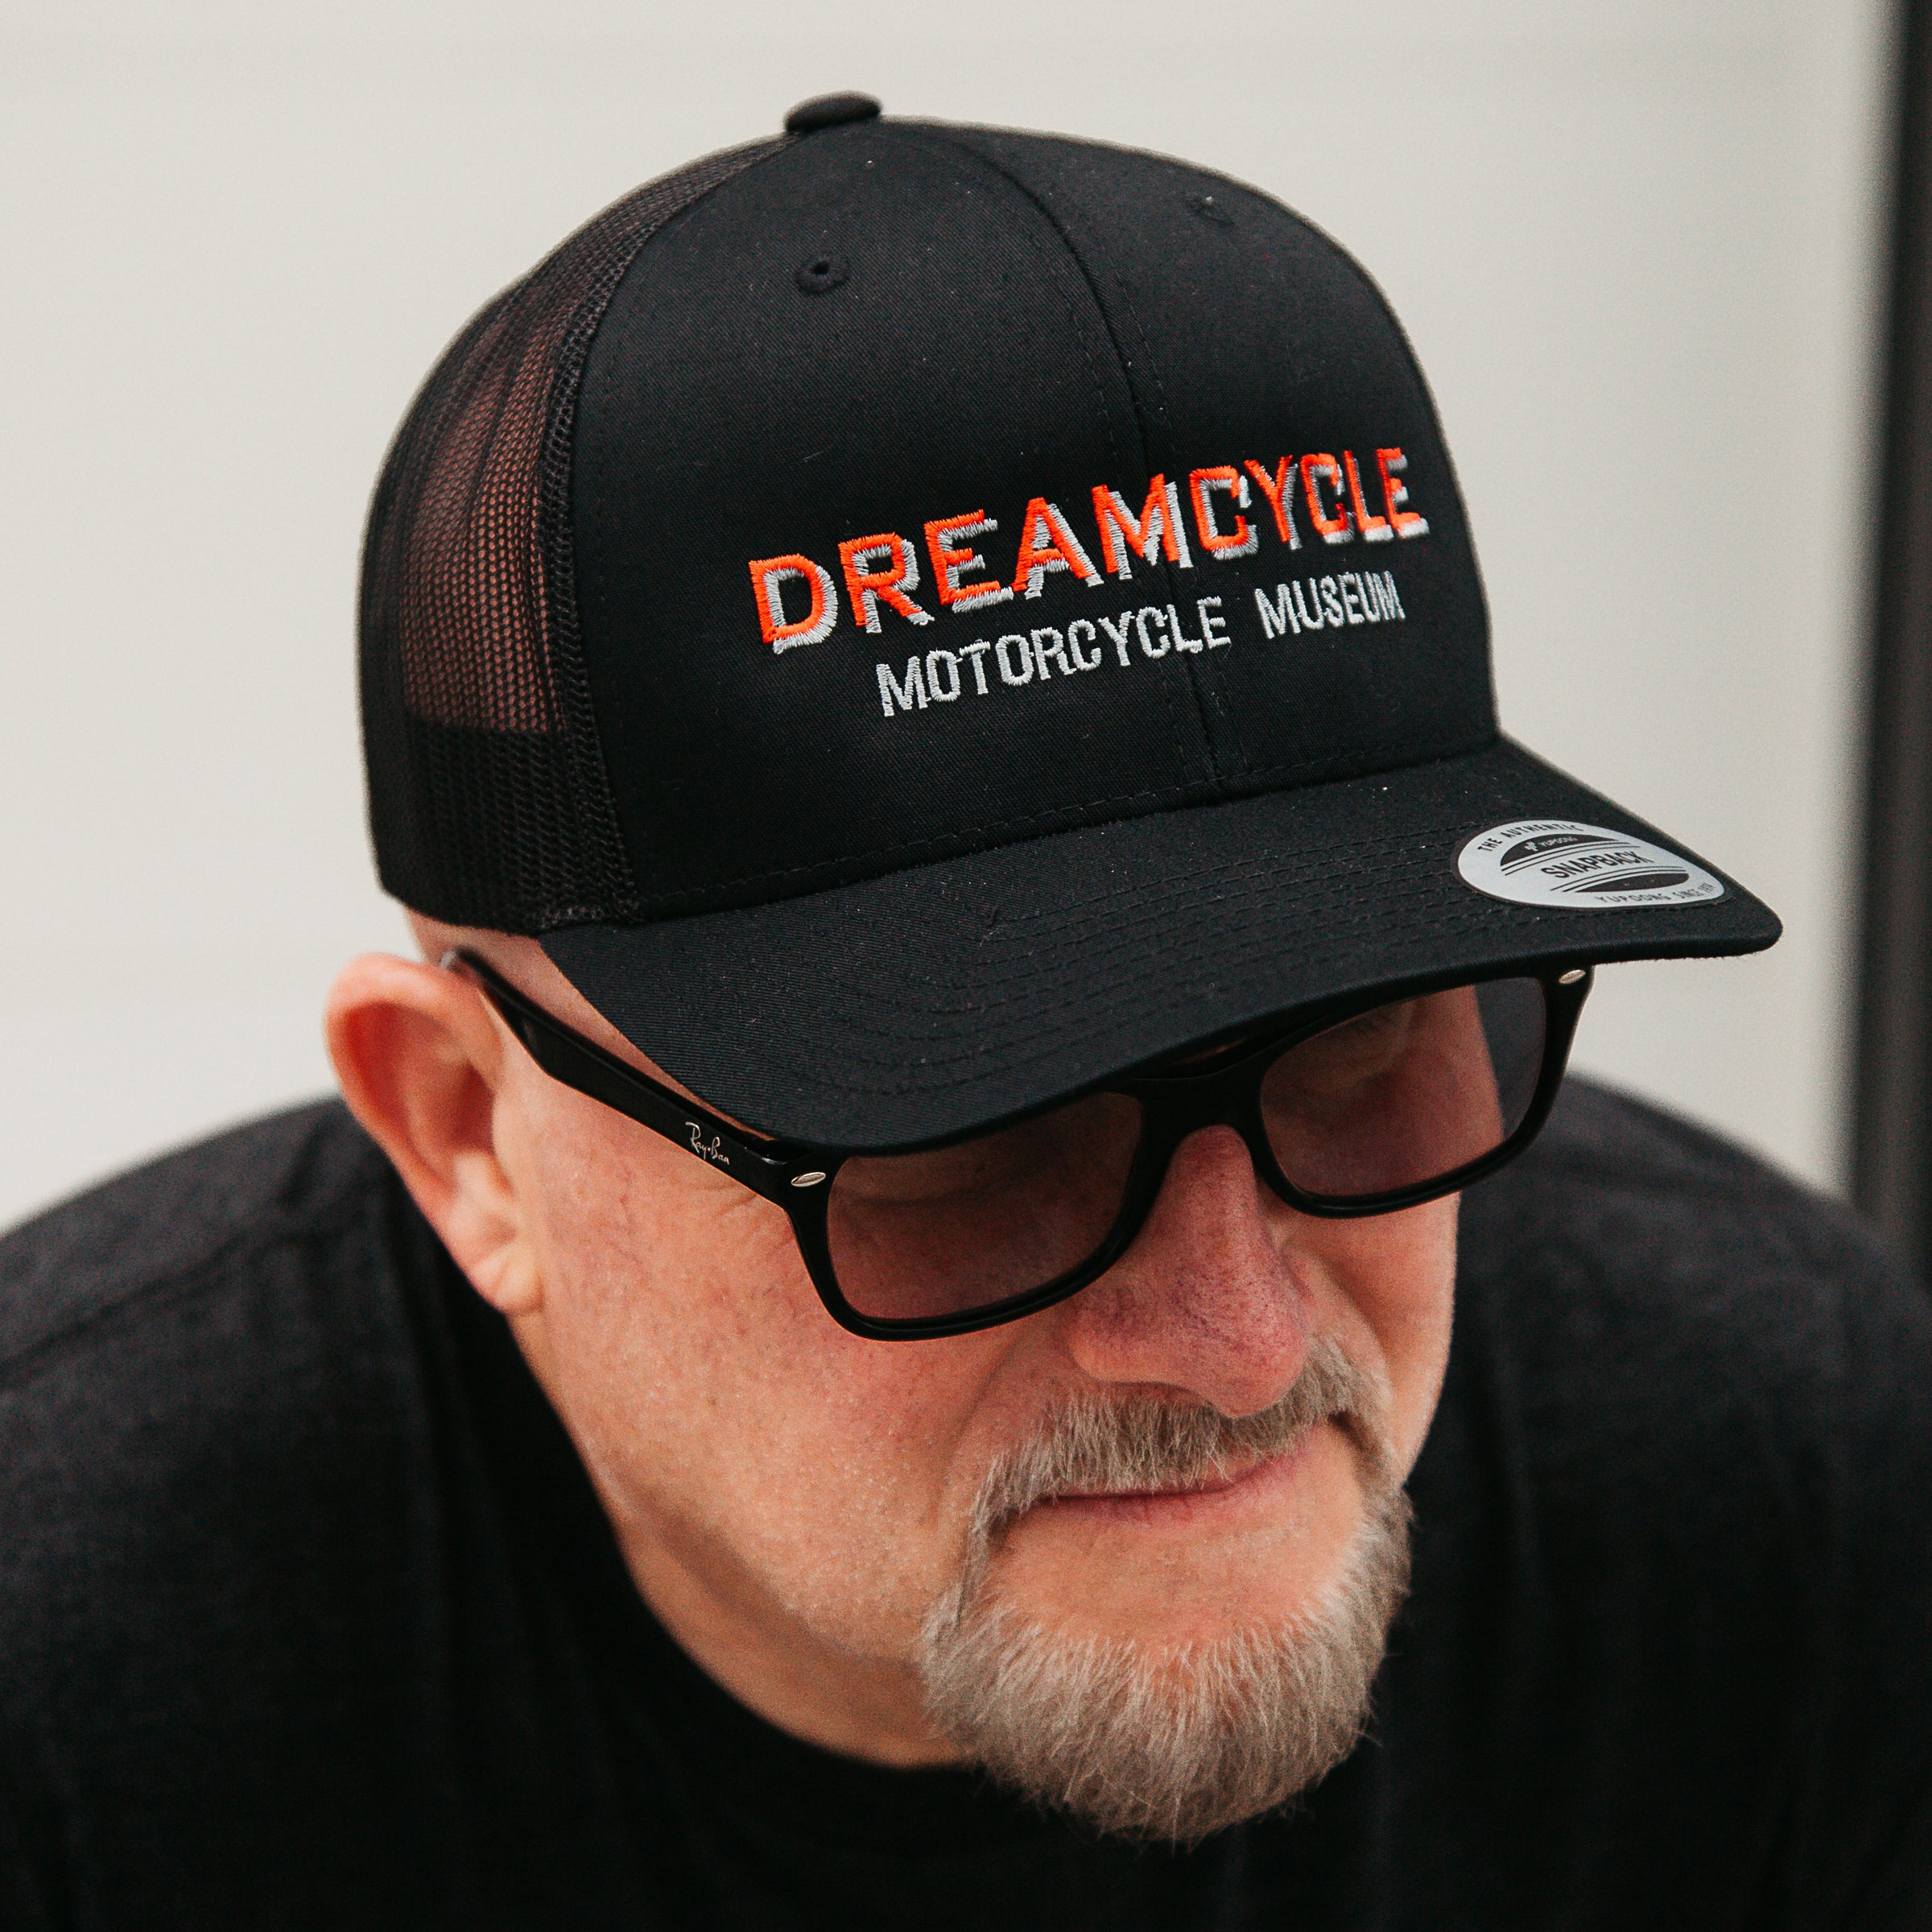 Dreamcycle Motorcycle Museum |  Man wearing Dreamcycle truckwr hat in lifestyle setting.